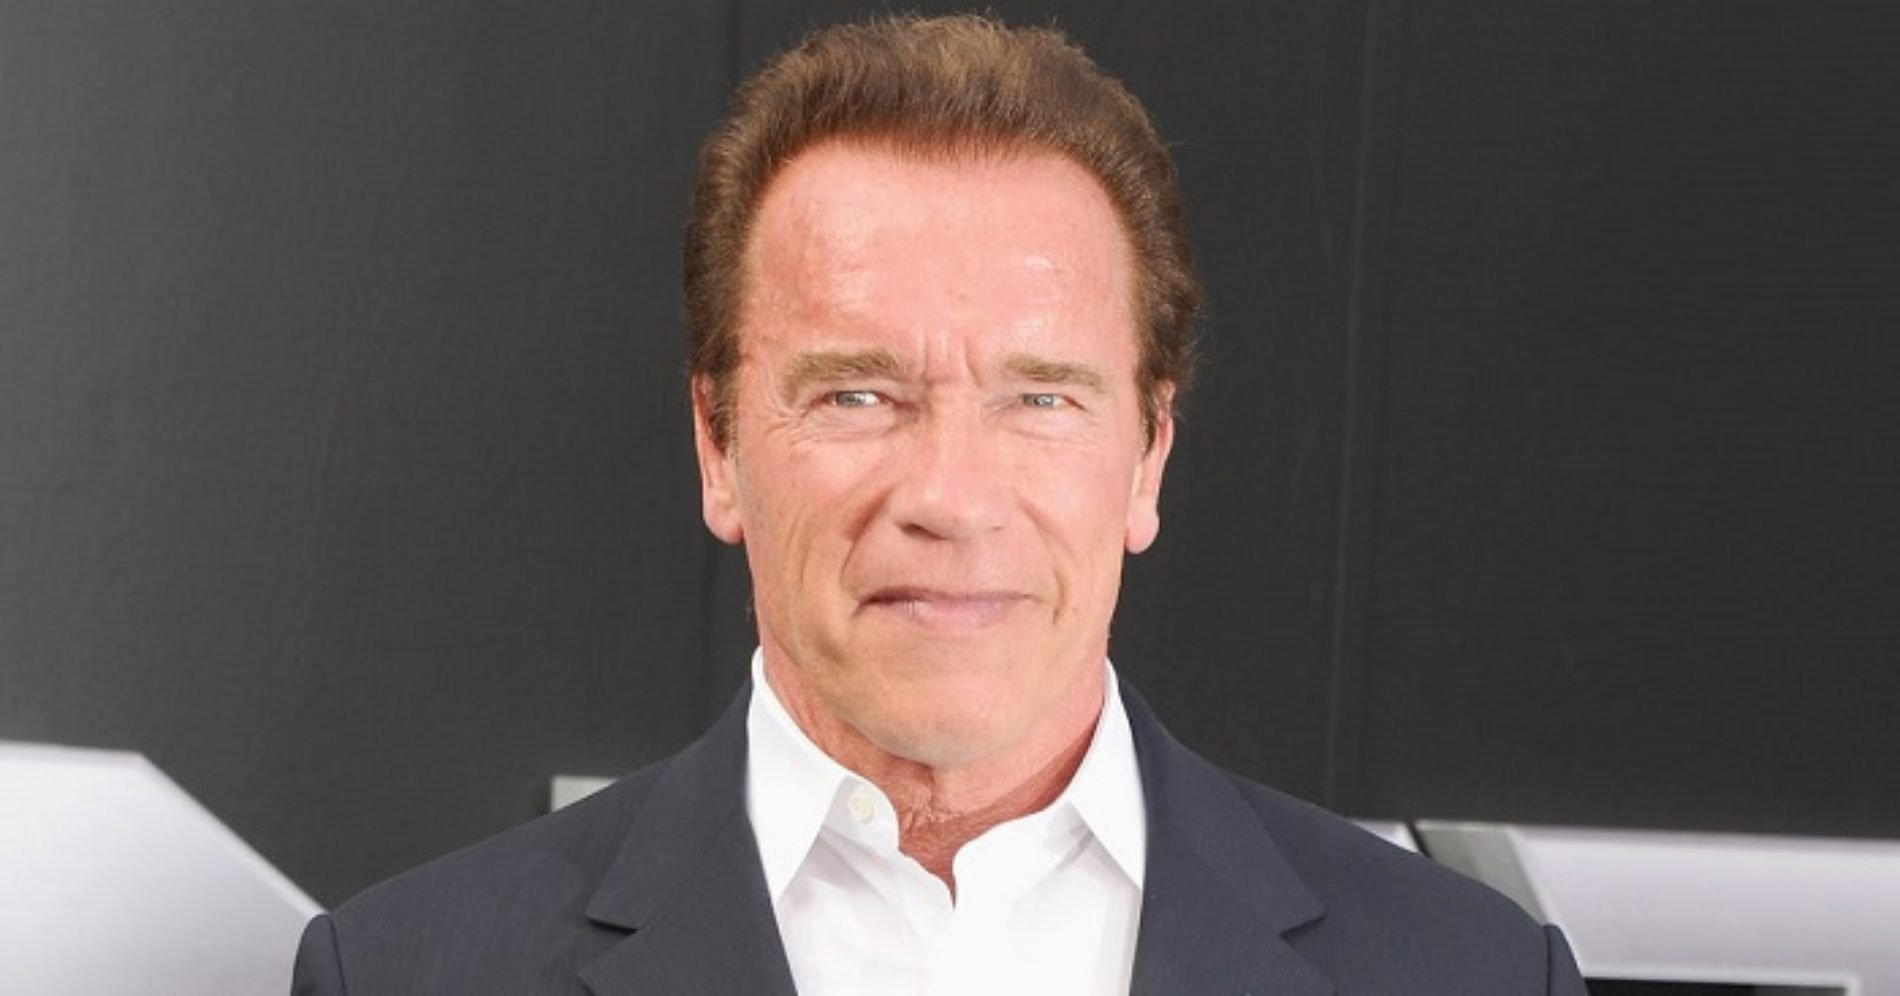 Arnold Schwarzenegger reveals his father beat him because he thought he was gay